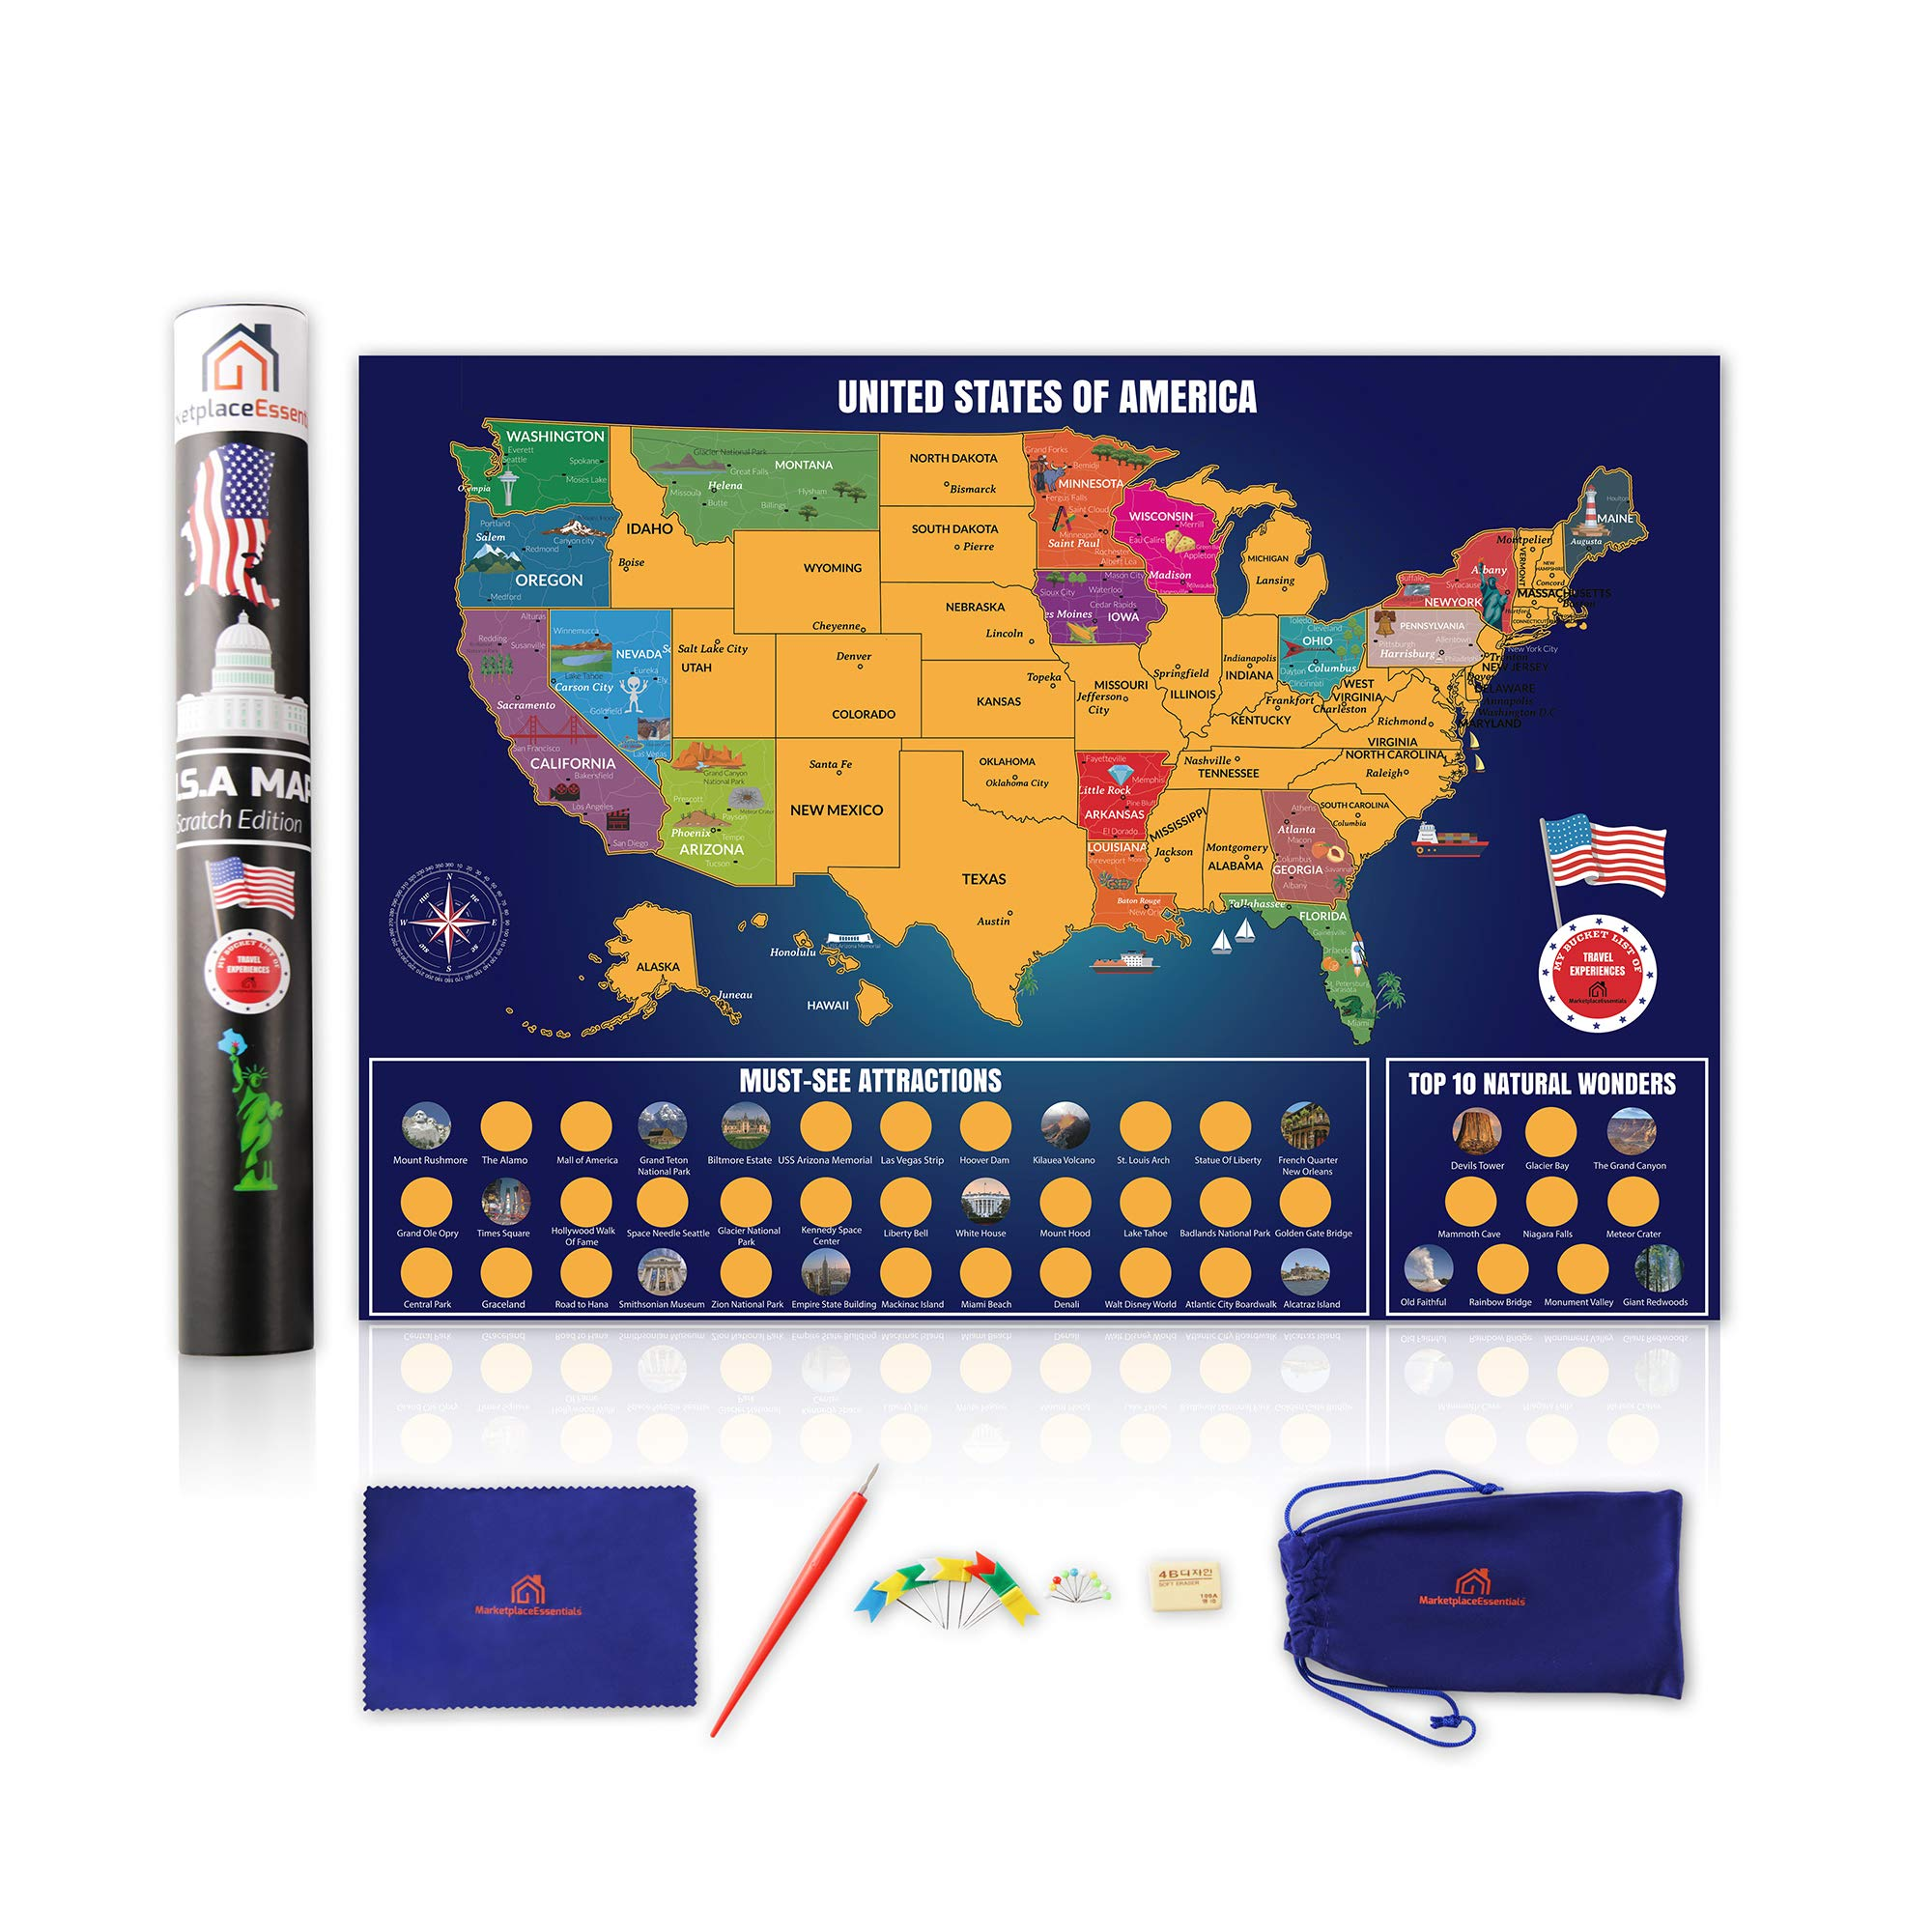 Scratch Off Map of The United States, Brilliant Color Travel US Map, Explore USA Attractions, Top 10 Wonders and National Parks, eBook Included